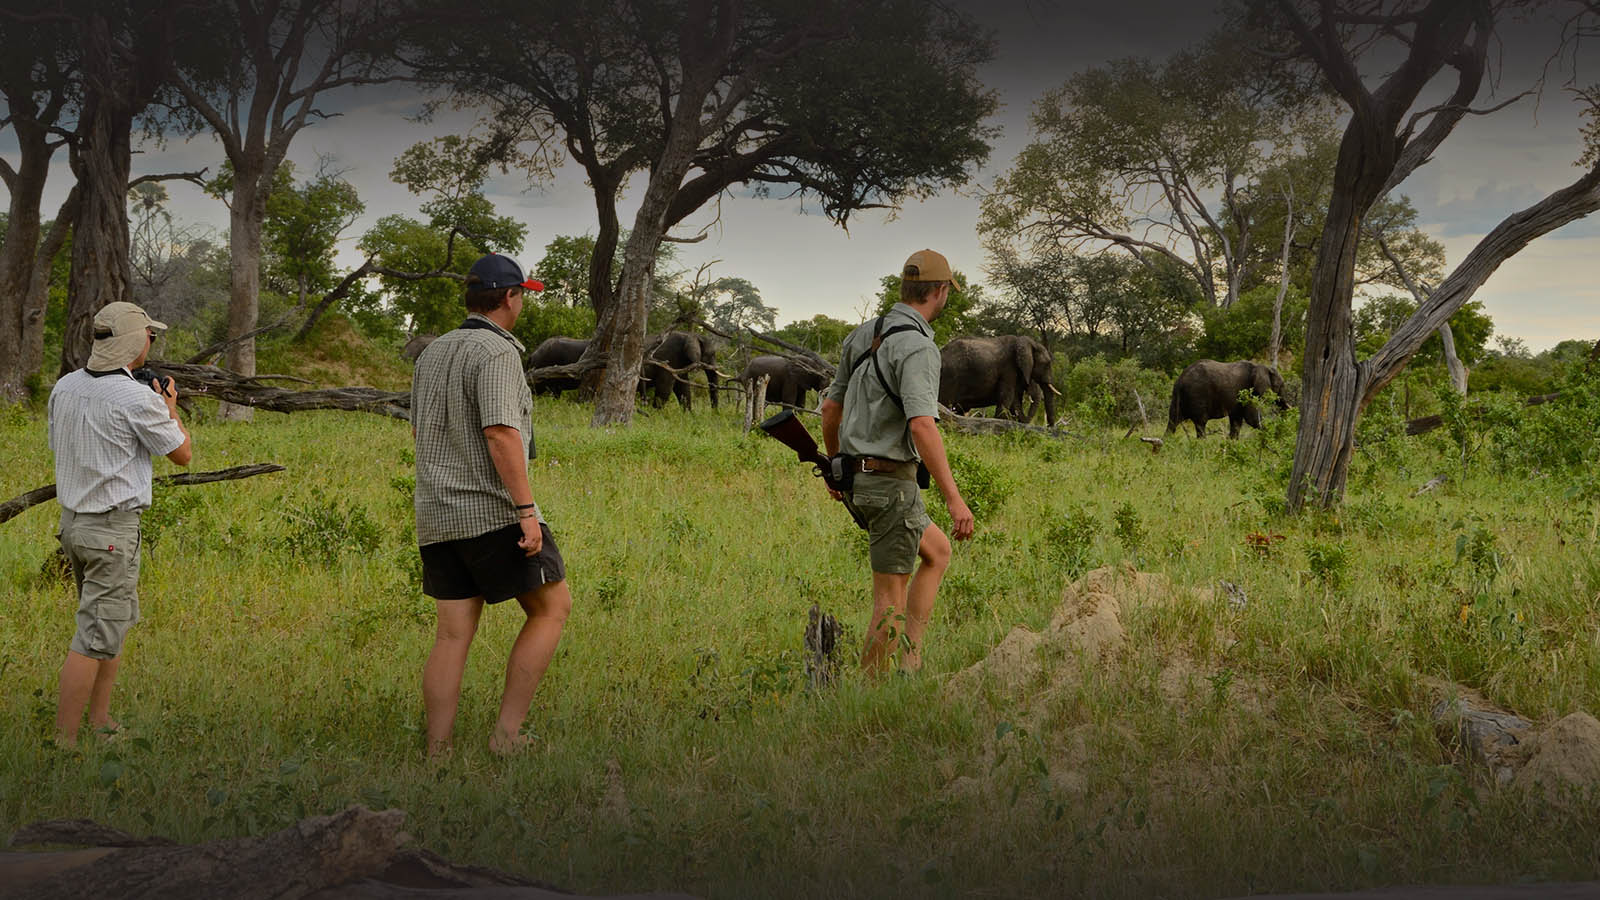 bomani tented lodge zimbabwe-accommodation-hwange-national-park-lodges-safari-walk-elephants